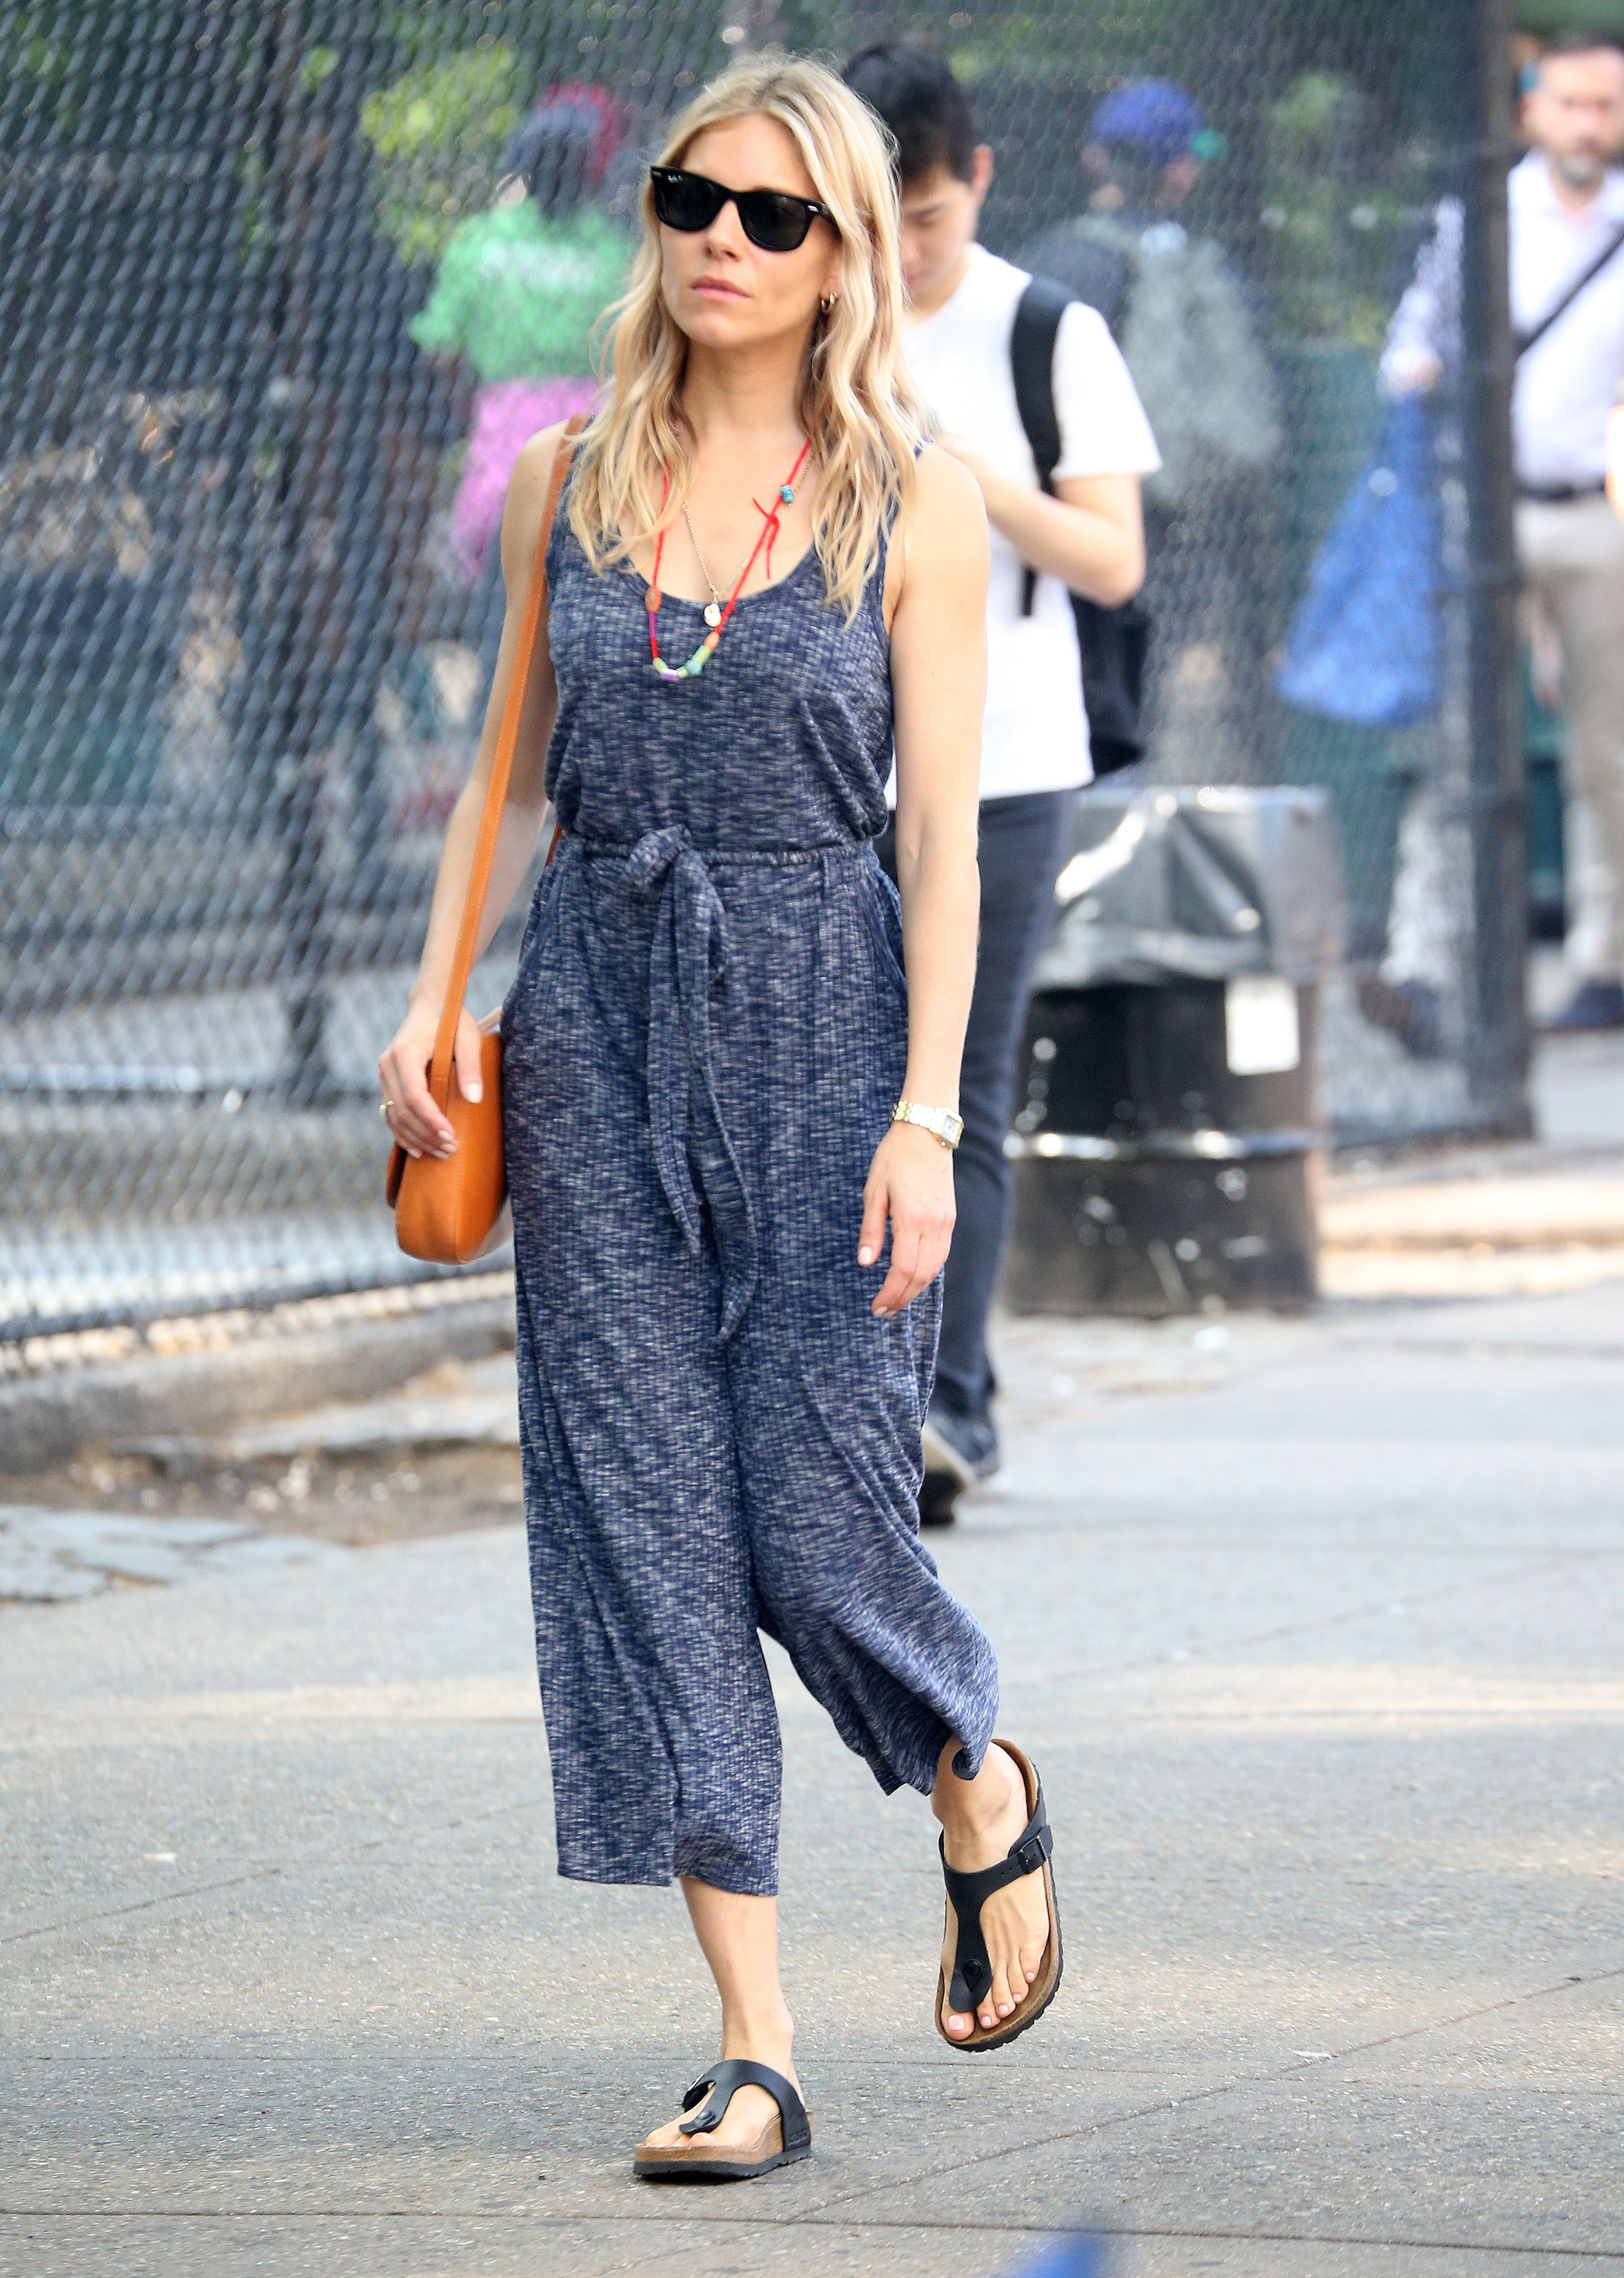 06afaeed68ed The Best Affordable Celebrity Fashion - Cheap Celebrity Fashion and Style  to Shop